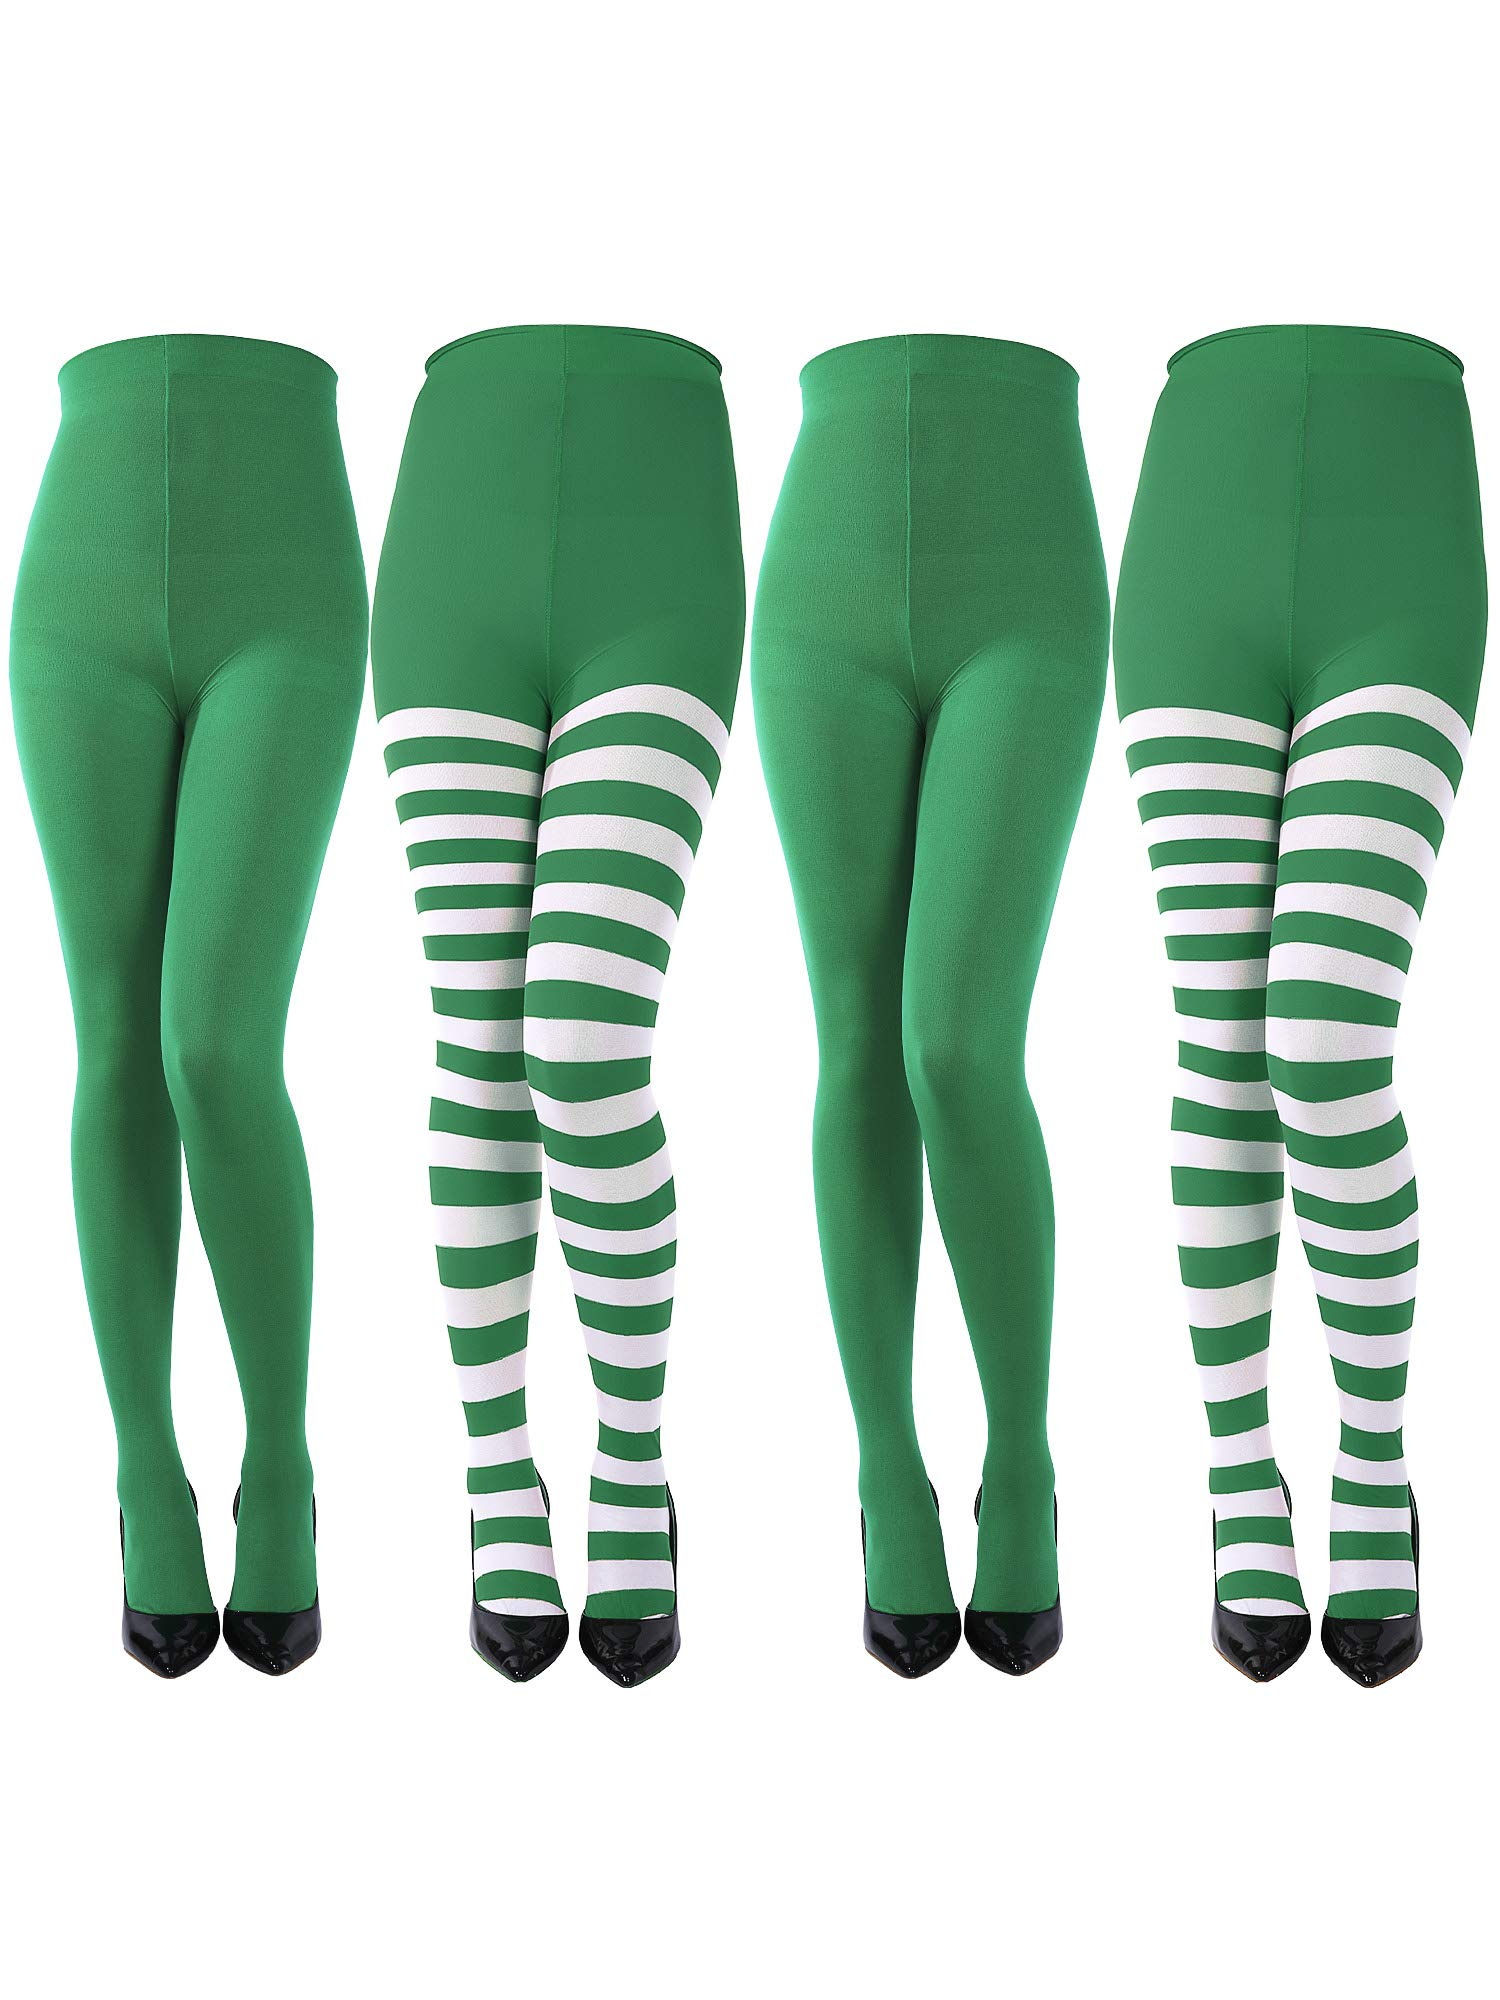 f2cbcccd3 Sumind 4 Pairs Women St. Patrick s Day Striped Tights Thigh High Socks  Panty-hose for St. Patrick s Day Cosplay Themed Party (Color D)